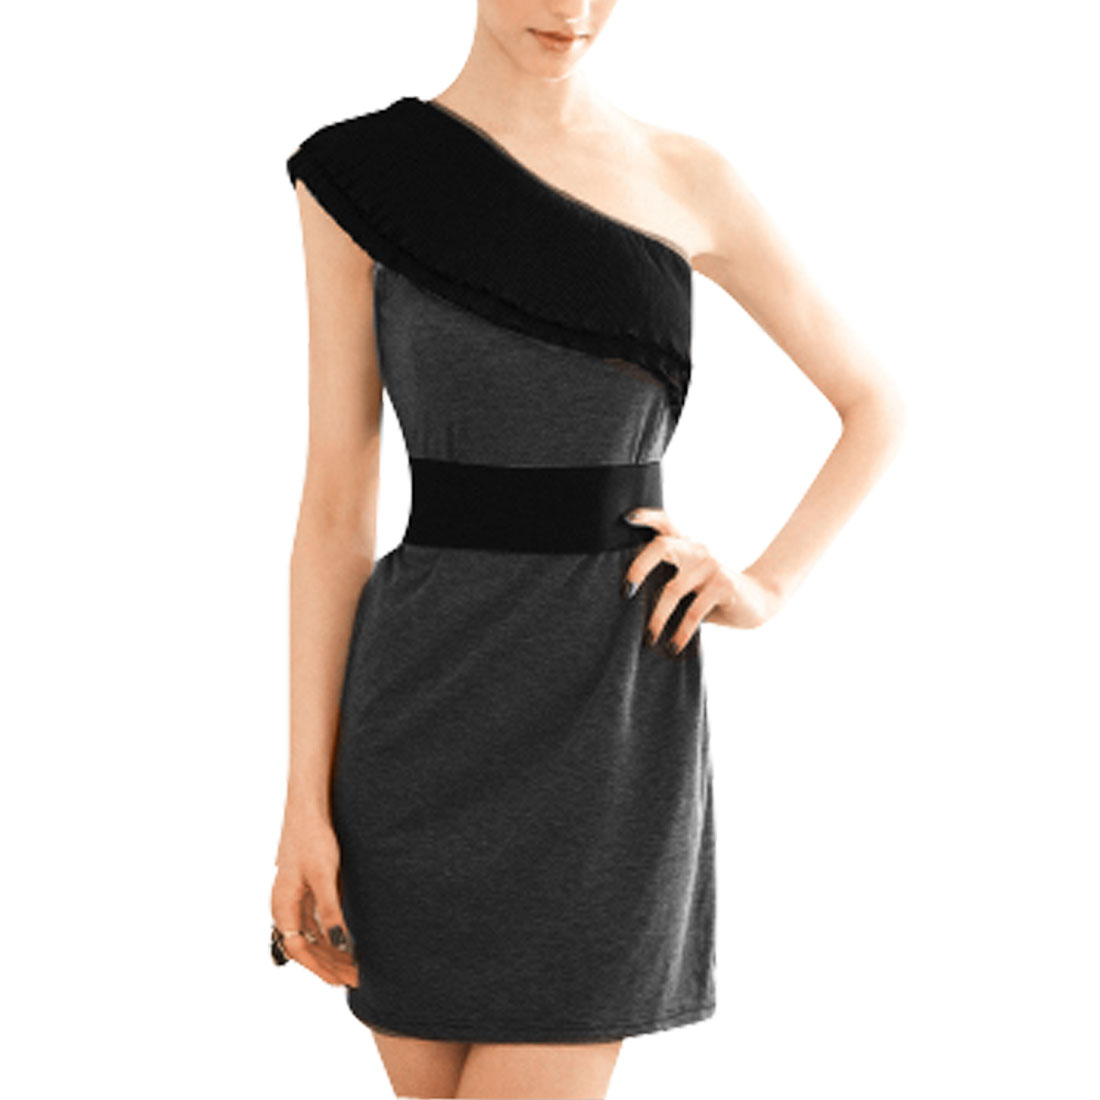 Elegant Sleeveless Off Shoulder Mini Dress Black Gray XS for Women